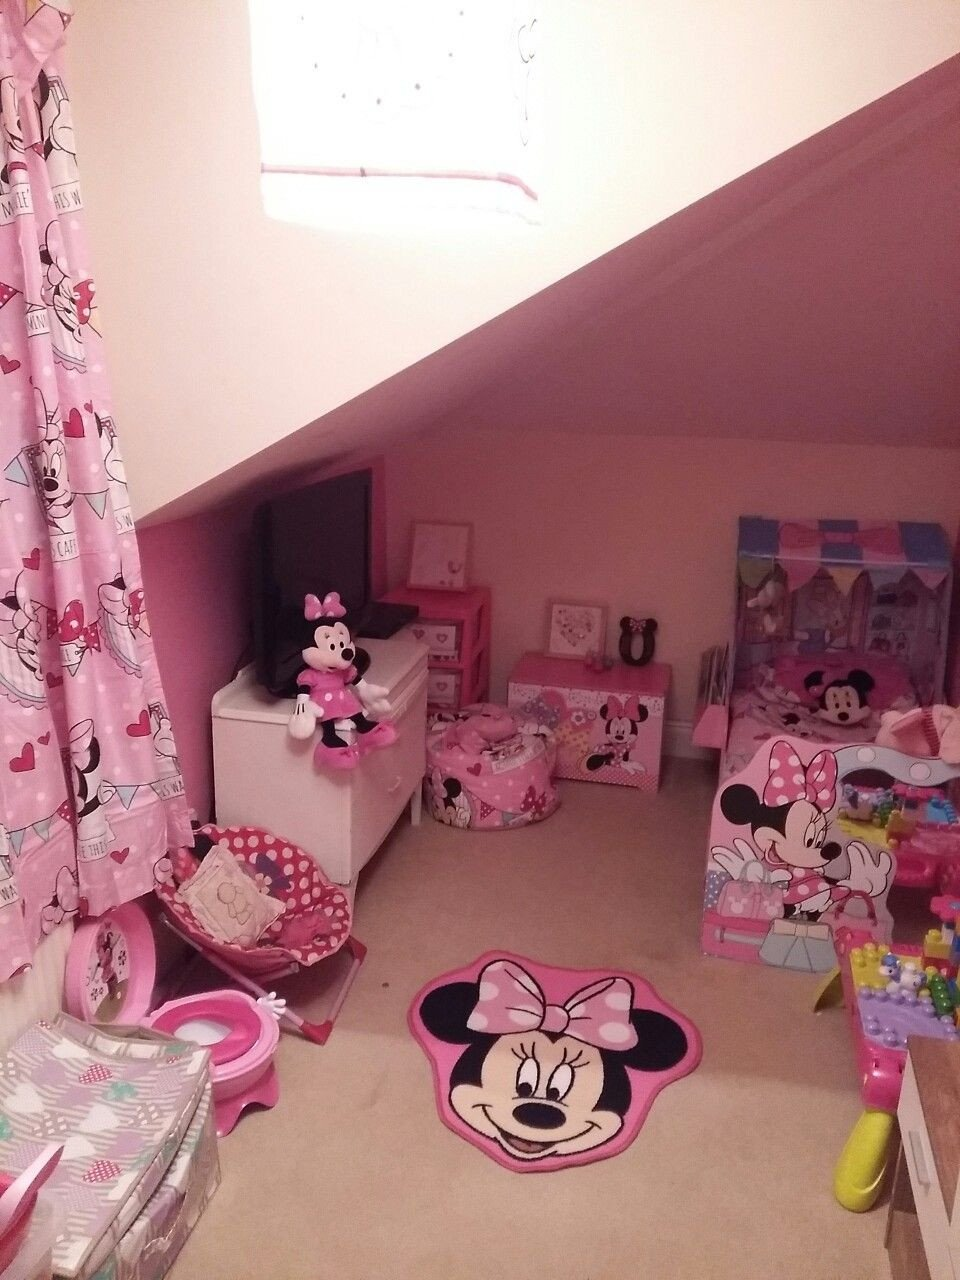 Mickey Mouse Bedroom Decorations Beautiful Minnie Mouse Bedroom